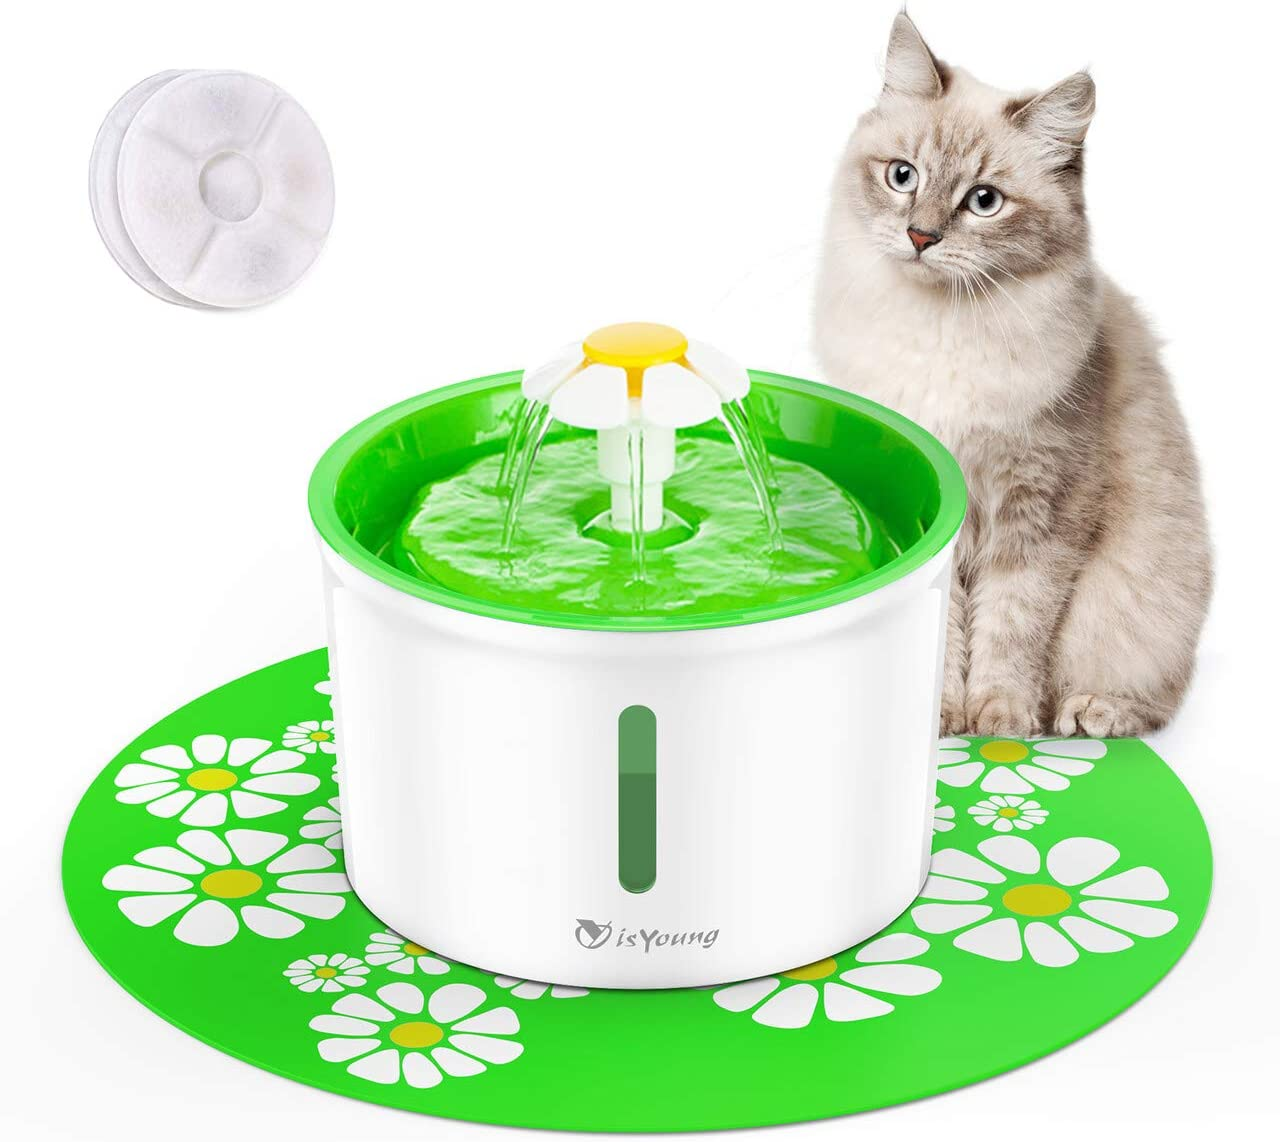 Amazon.com : isYoung Cat Fountain 1.6L Automatic Pet Water ...